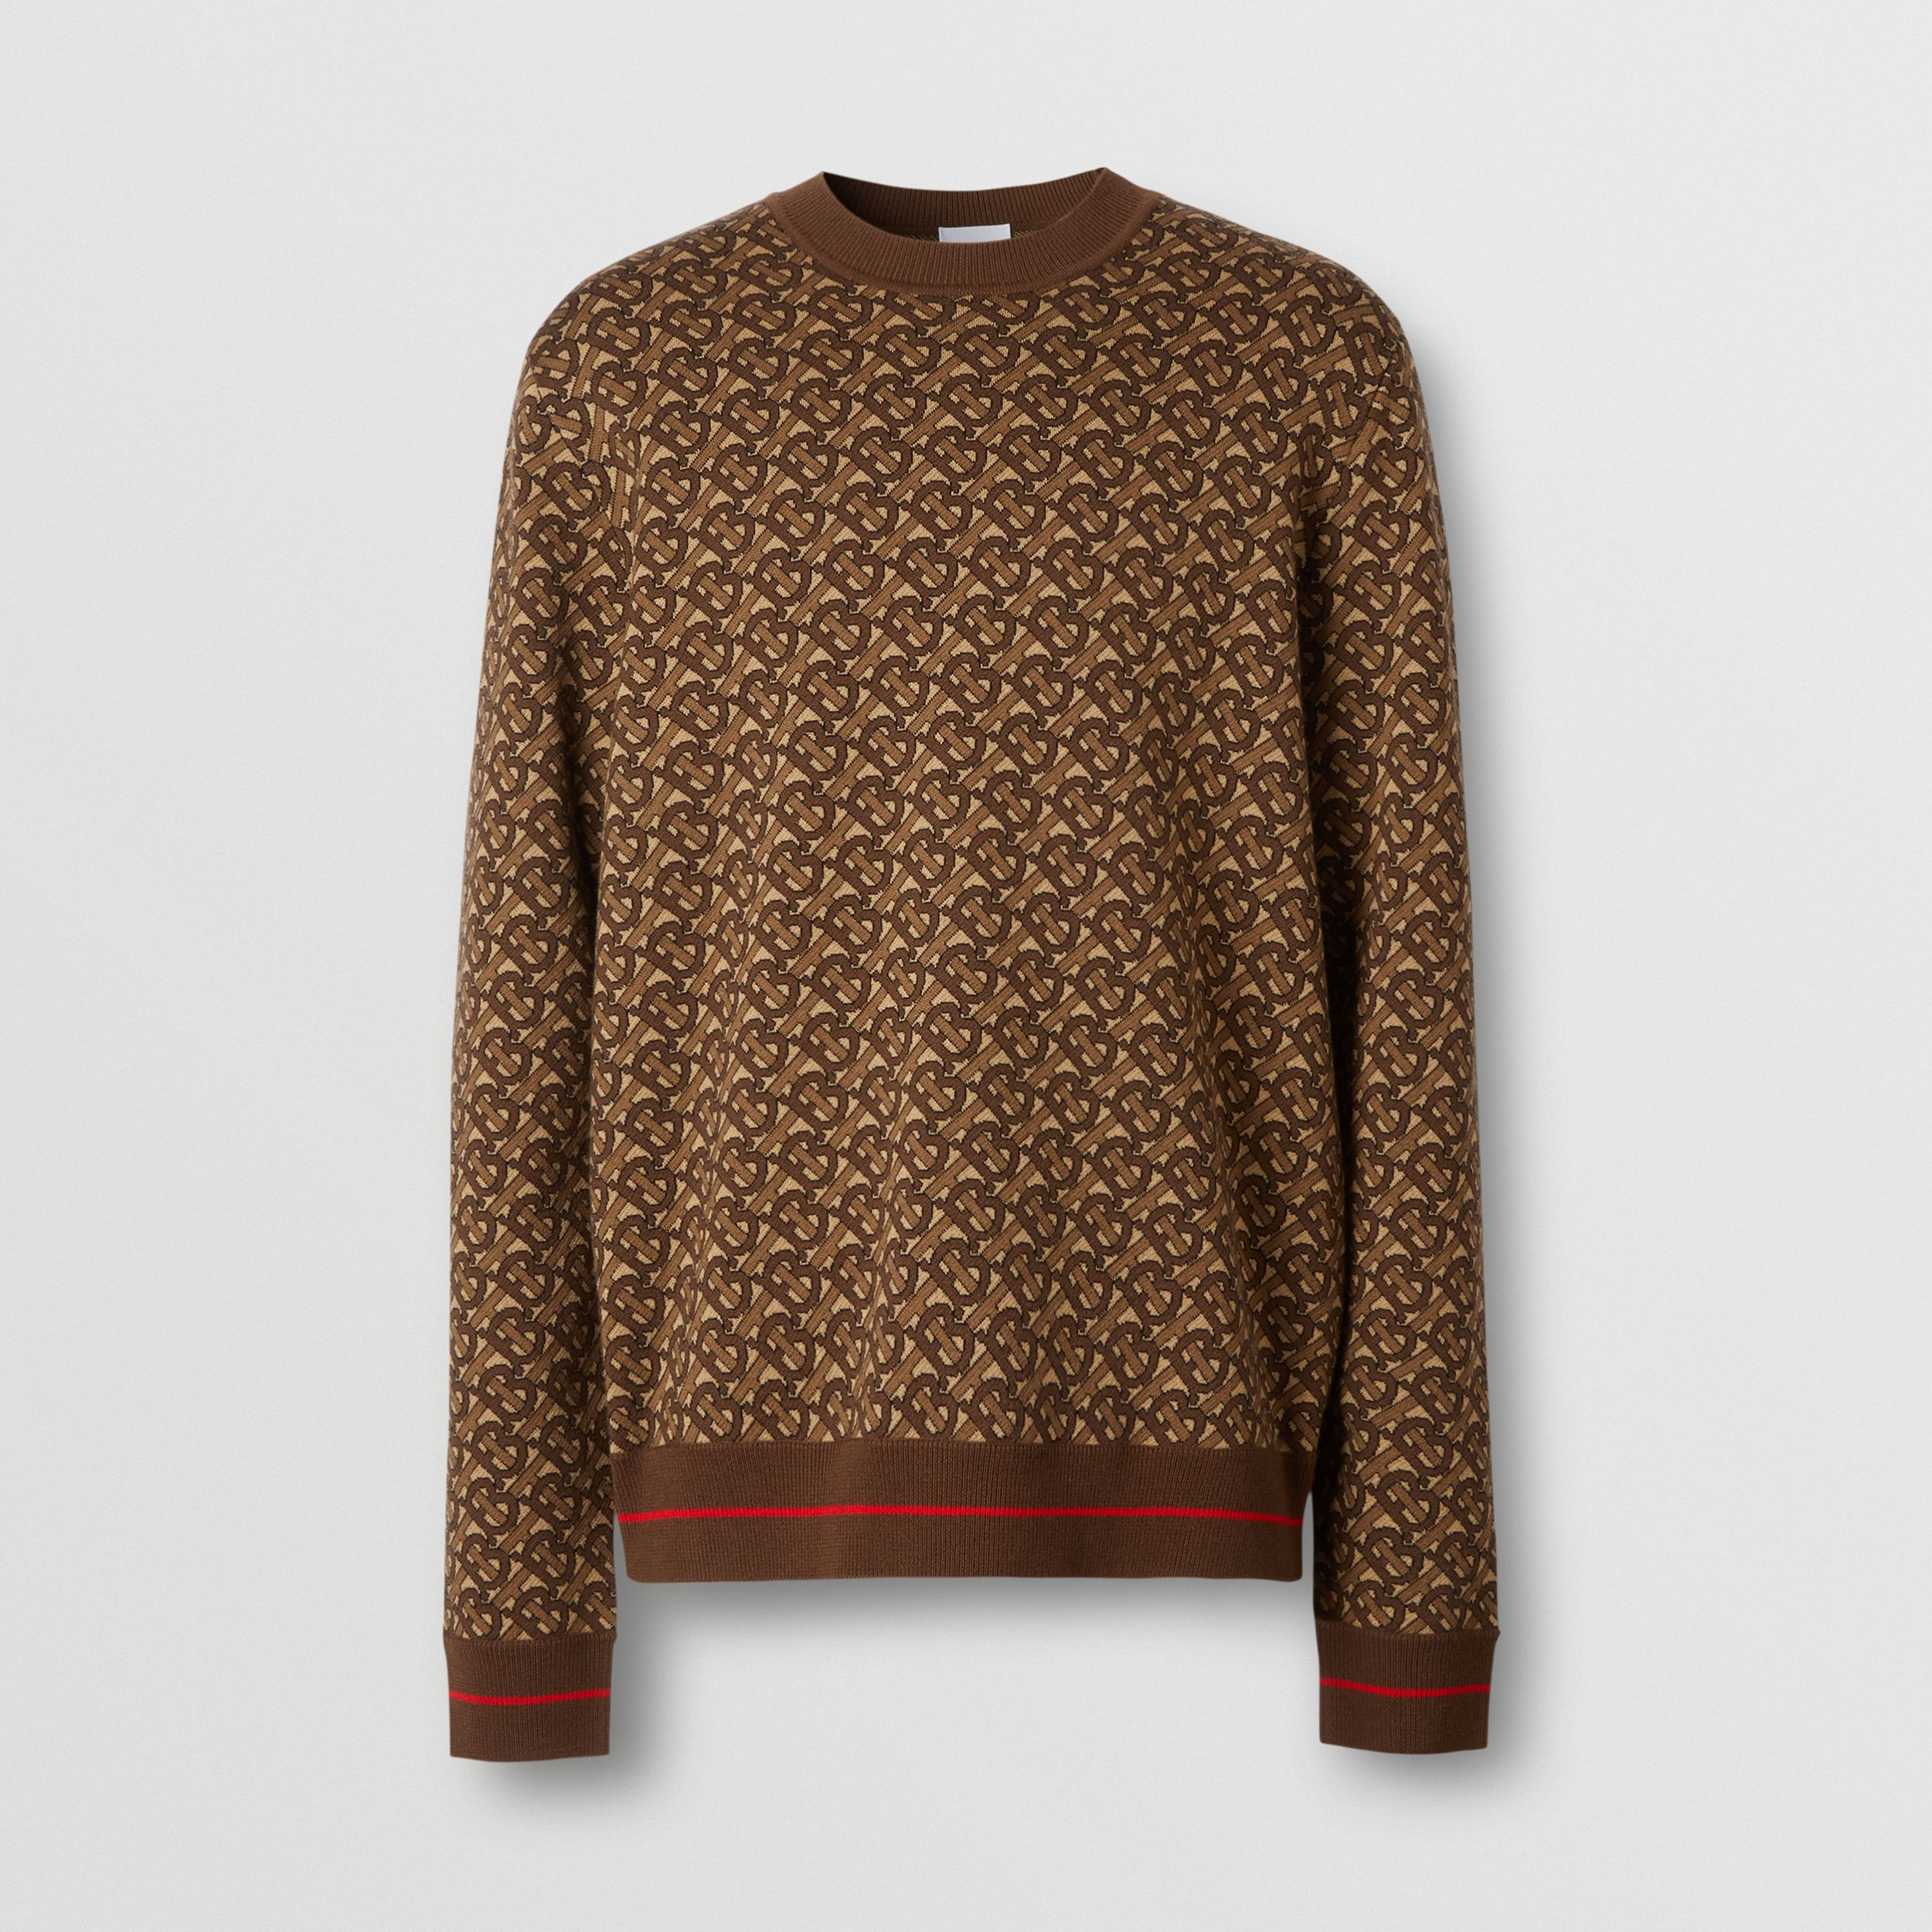 Monogram Merino Wool Jacquard Sweater in Bridle Brown - Men | Burberry Canada - 4